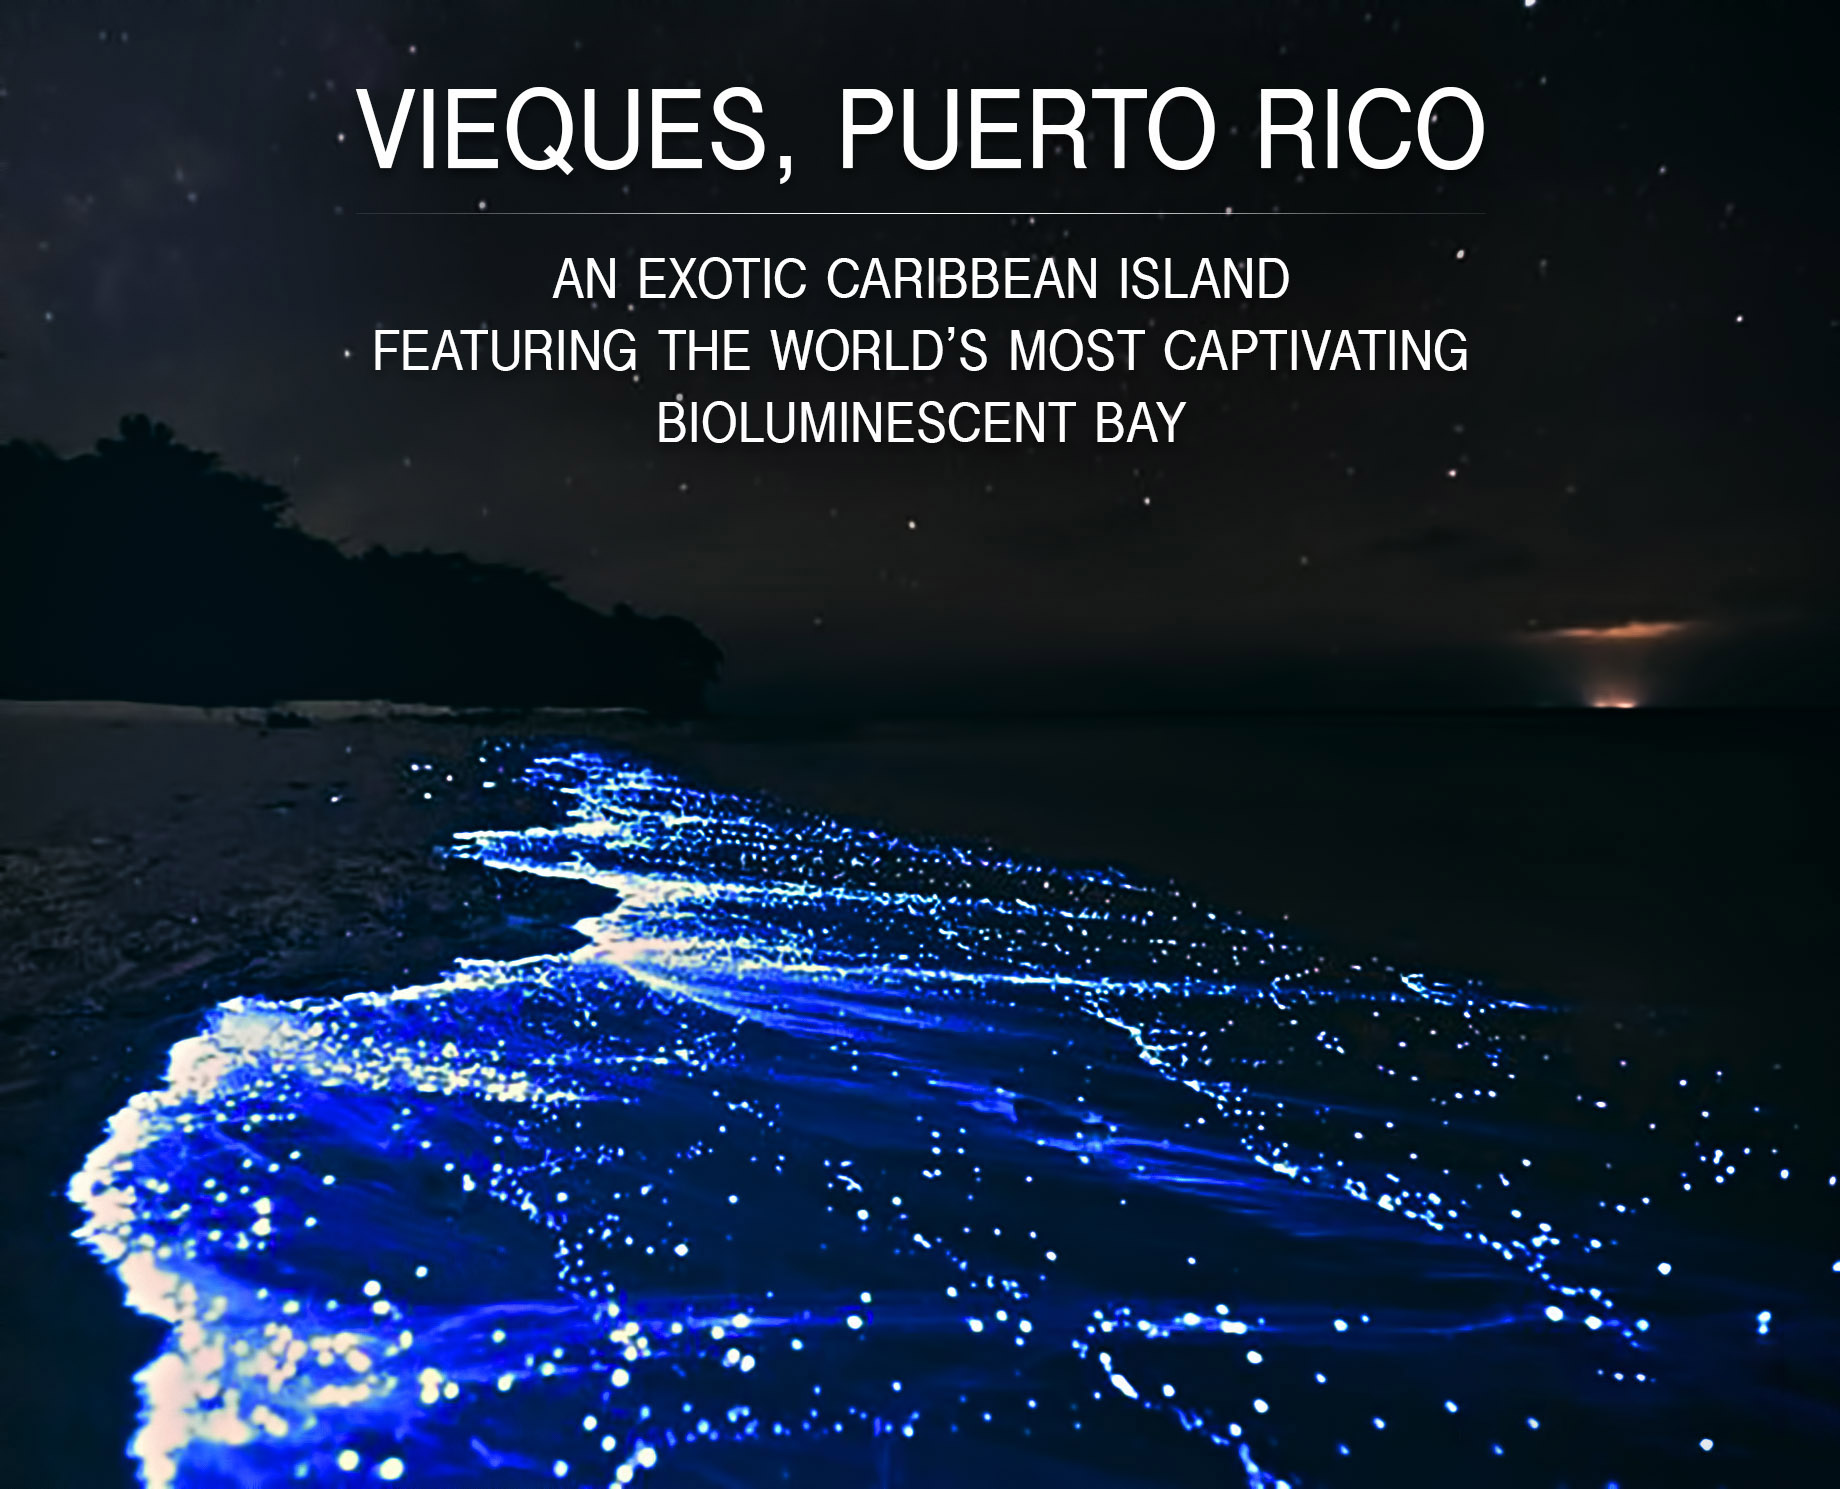 Vieques, Puerto Rico – An Exotic Caribbean Island Featuring the World's Most Captivating Bioluminescent Bay